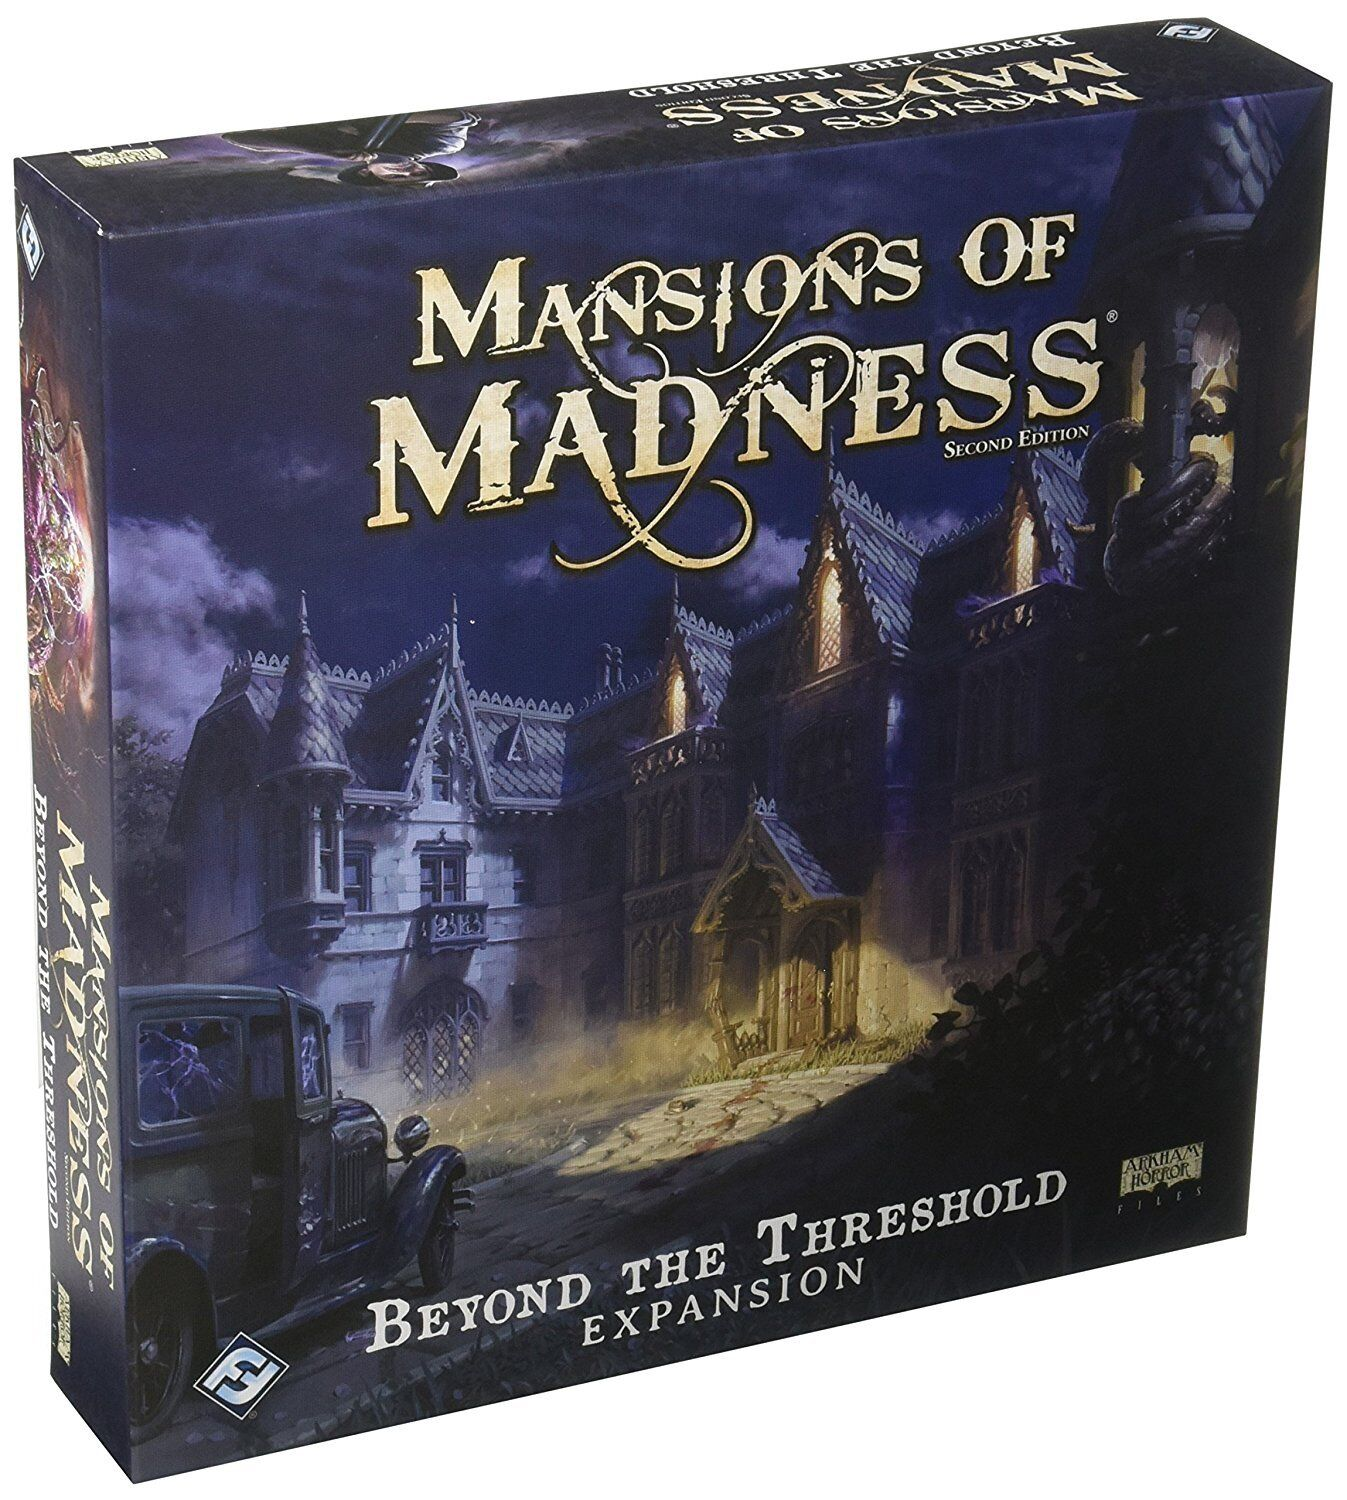 NEW Mansions of Madness 2nd Edition: Beyond the Threshold Expansion